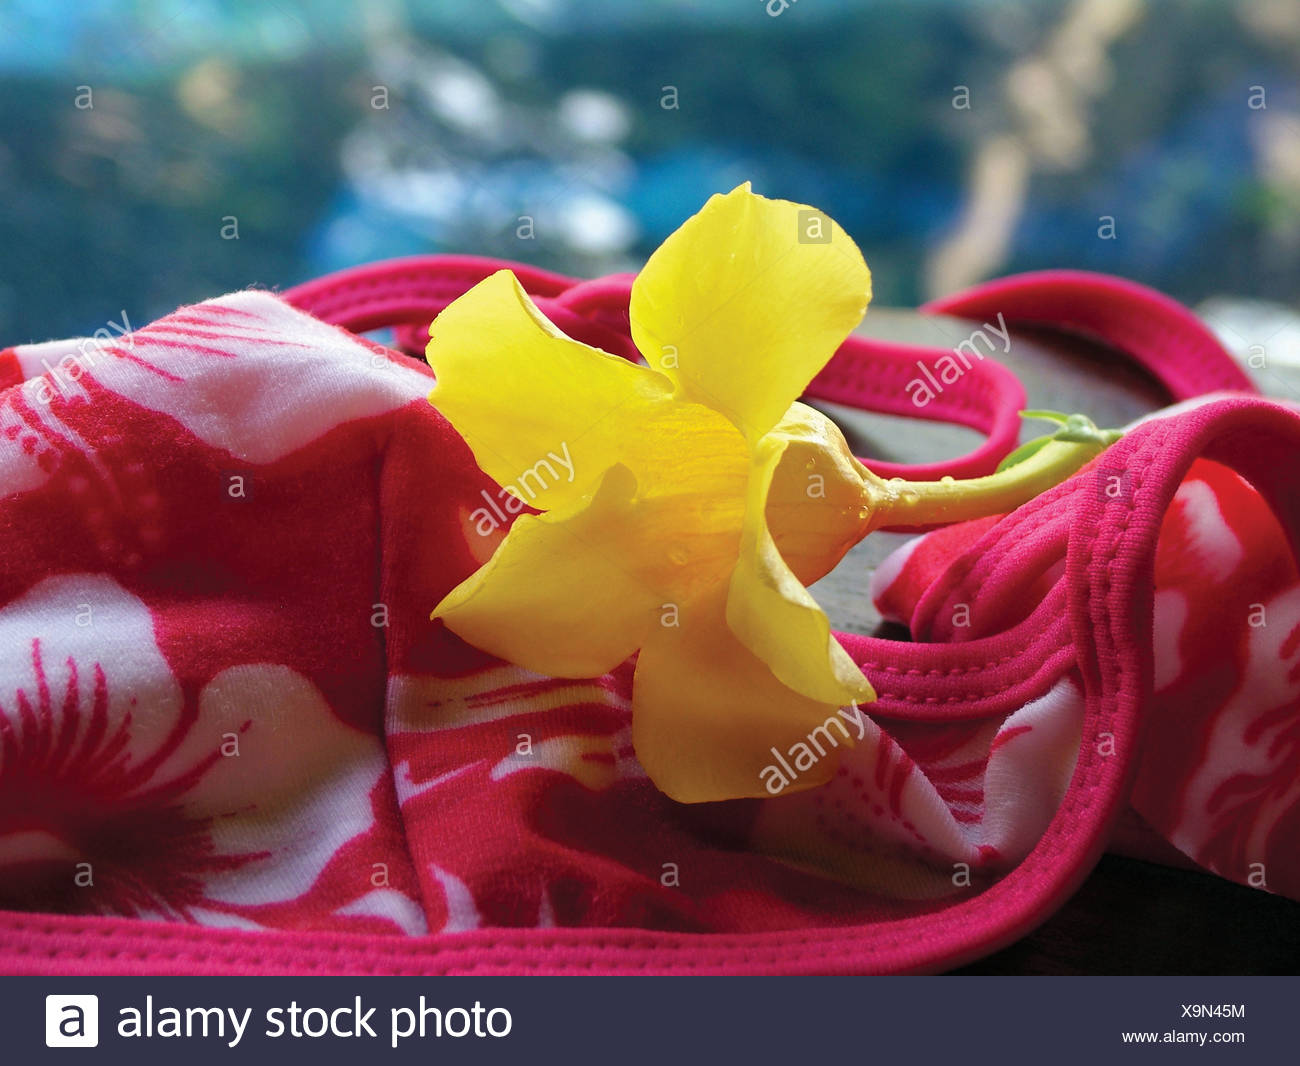 808ed2405ad High angle view of a buttercup flower on a bikini top Stock Photo ...